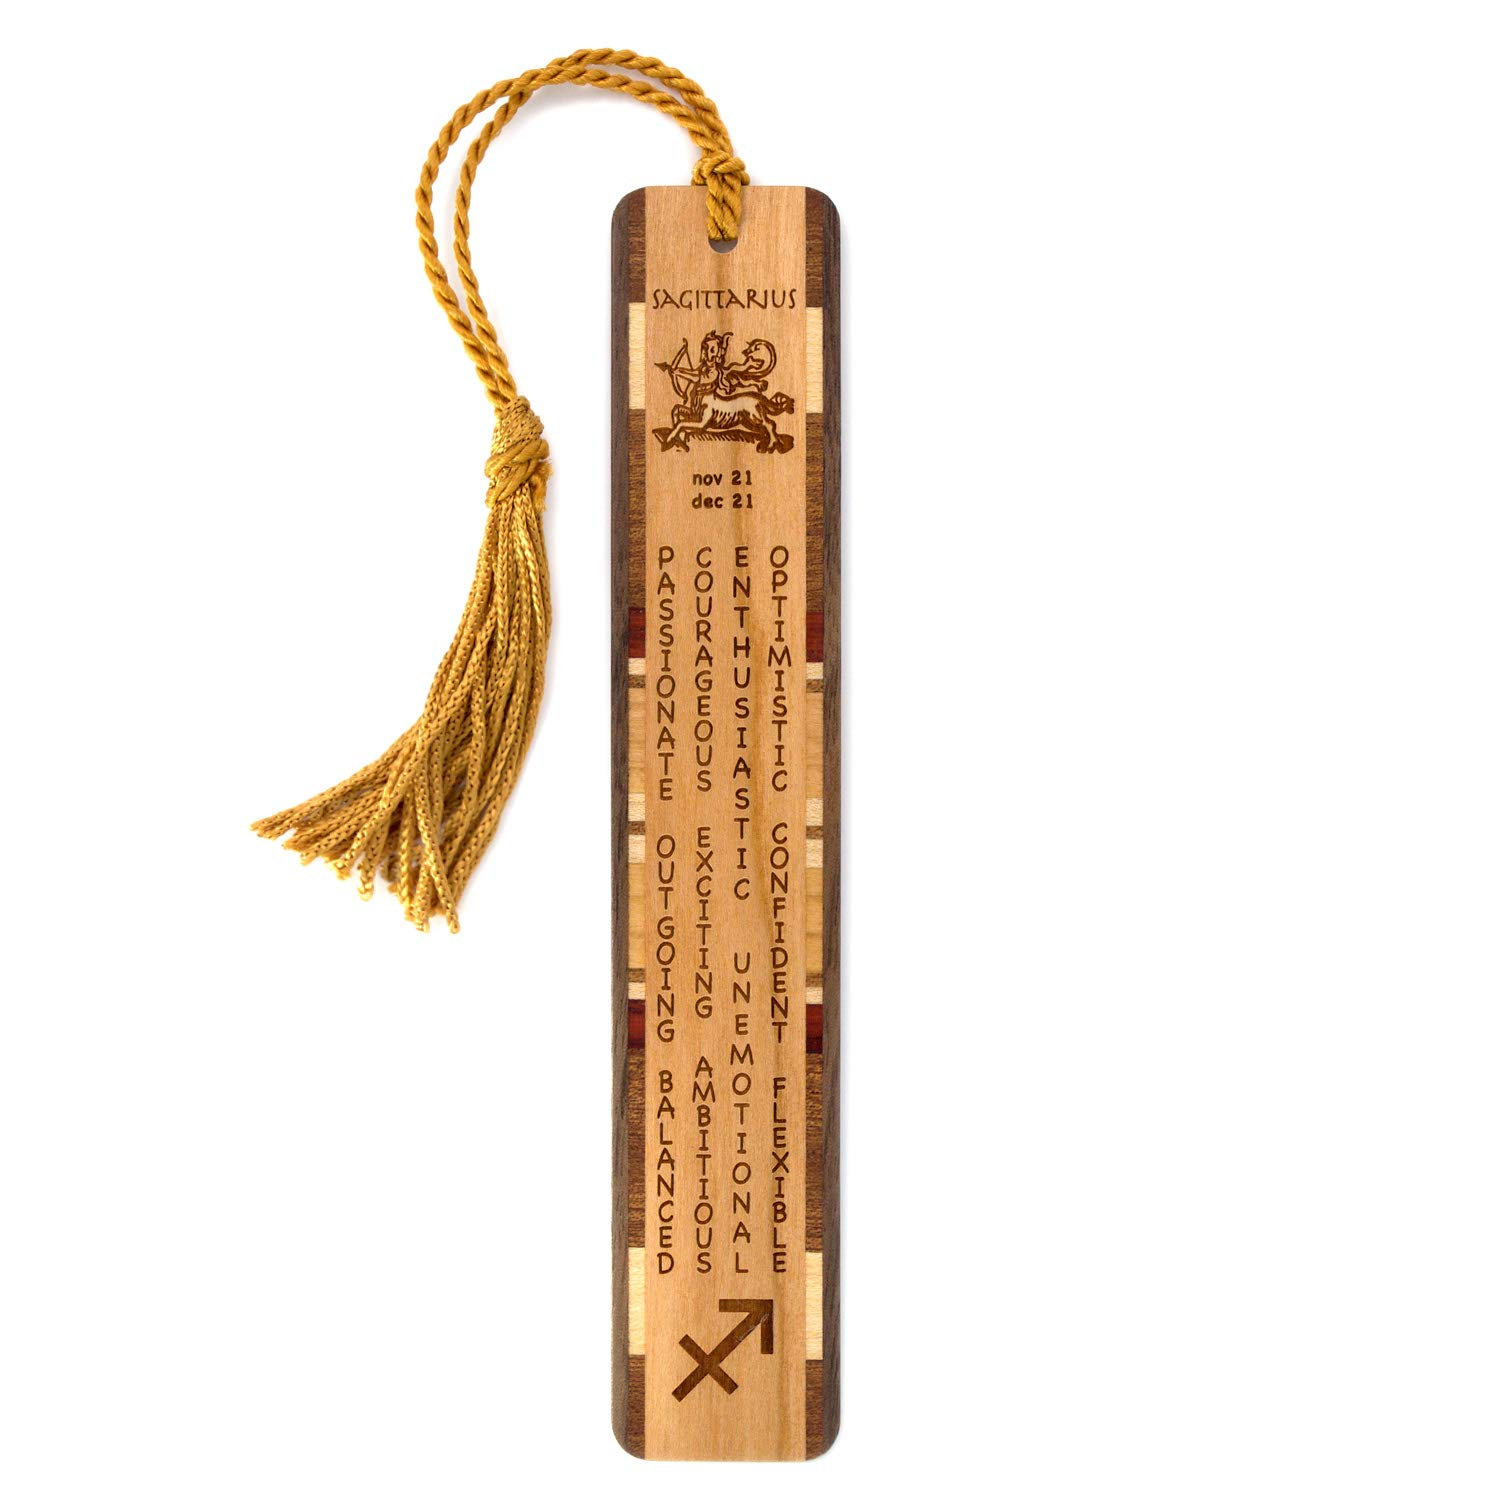 Sagittarius Zodiac Sign Artwork and Positive Personality Traits Engraved Wooden Bookmark with Tassel - Also Available Personalized